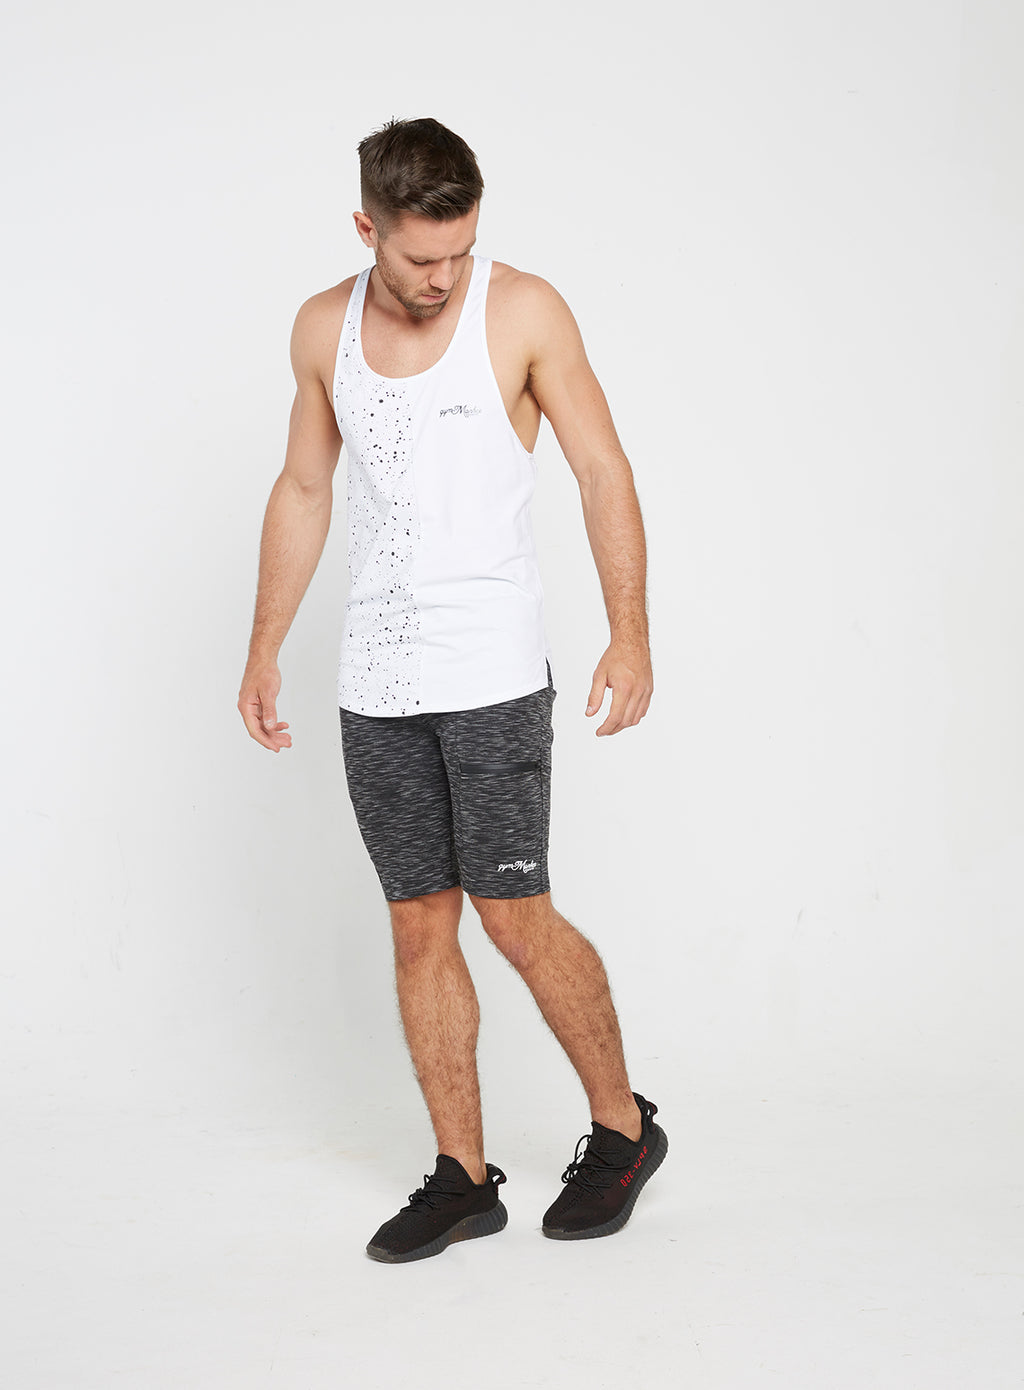 Gym Monkee - White Speckled Vest FRONT MOVING